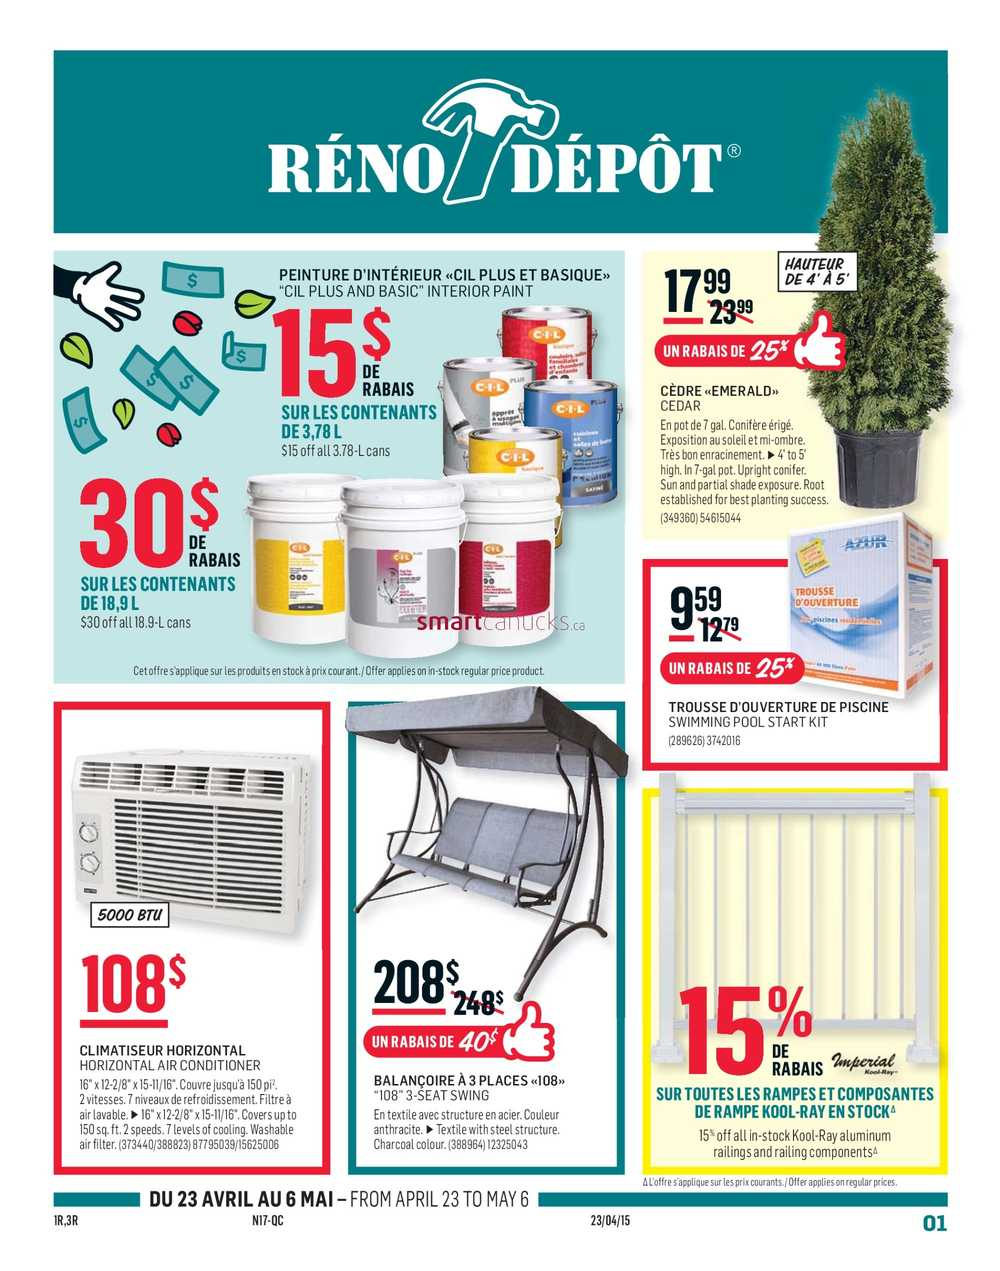 Porte Interieur Reno Depot Reno Depot Flyer April 23 To May 6